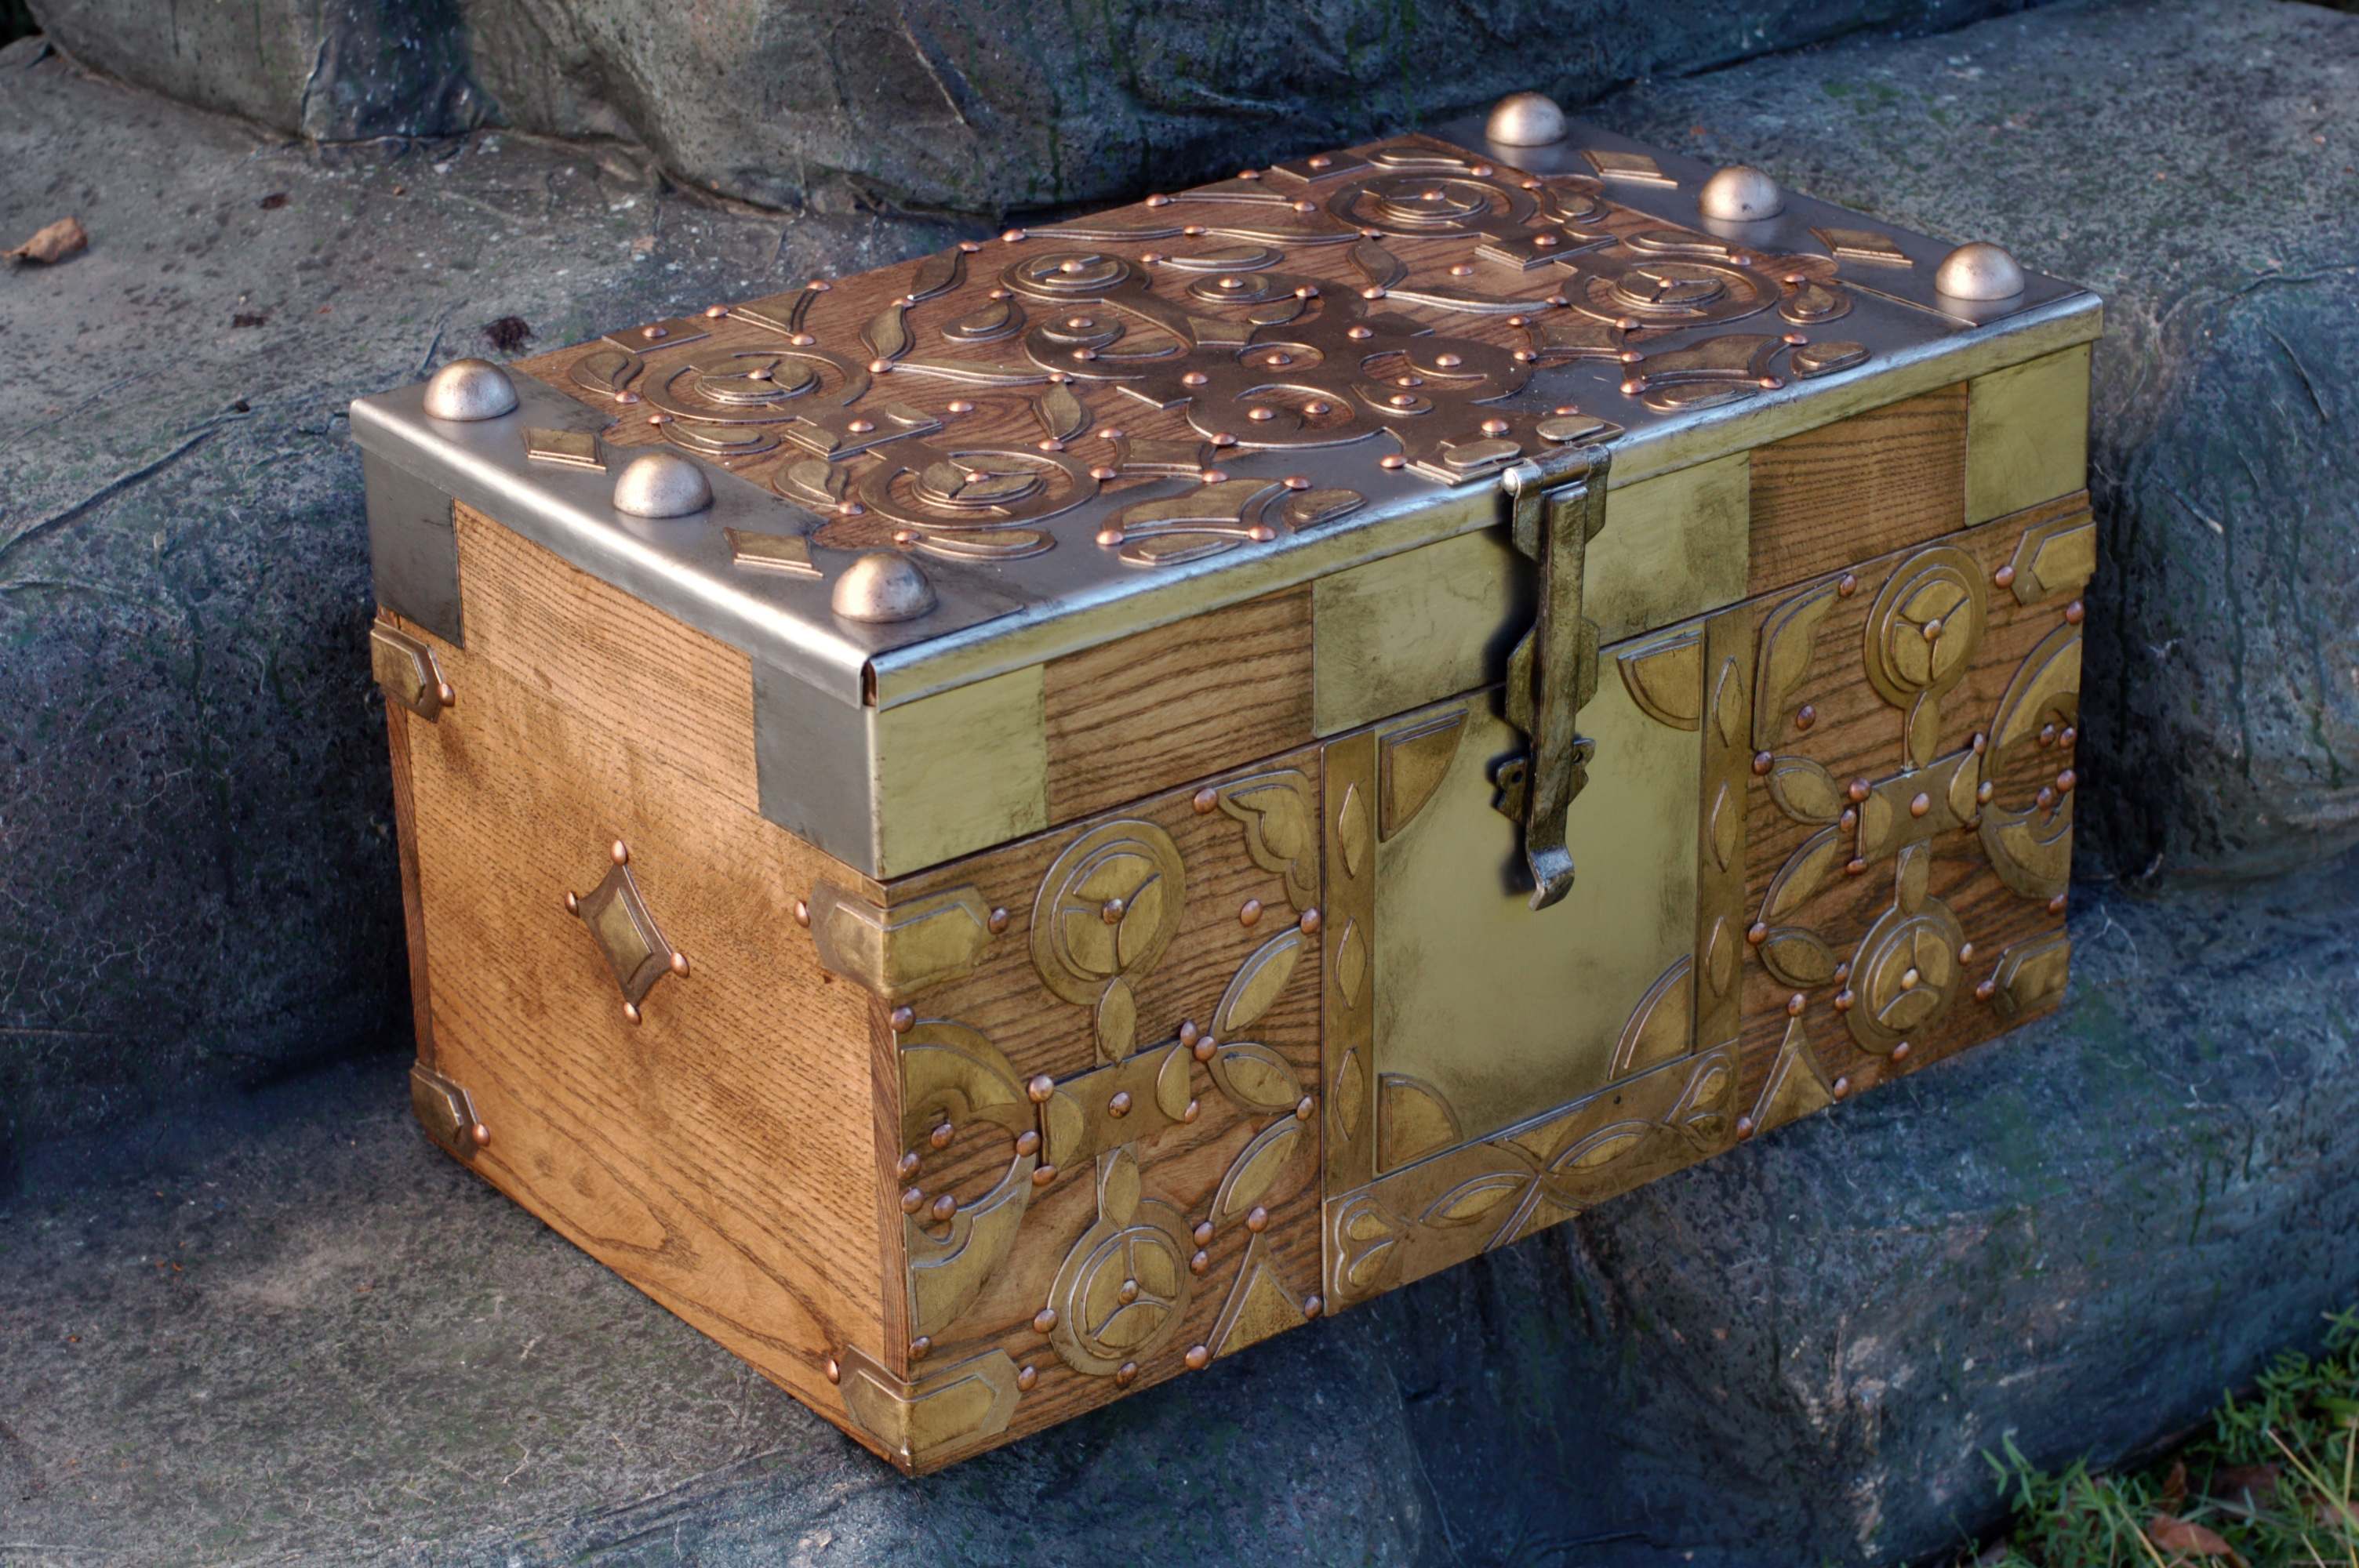 replica chest from game of thrones prop agenda